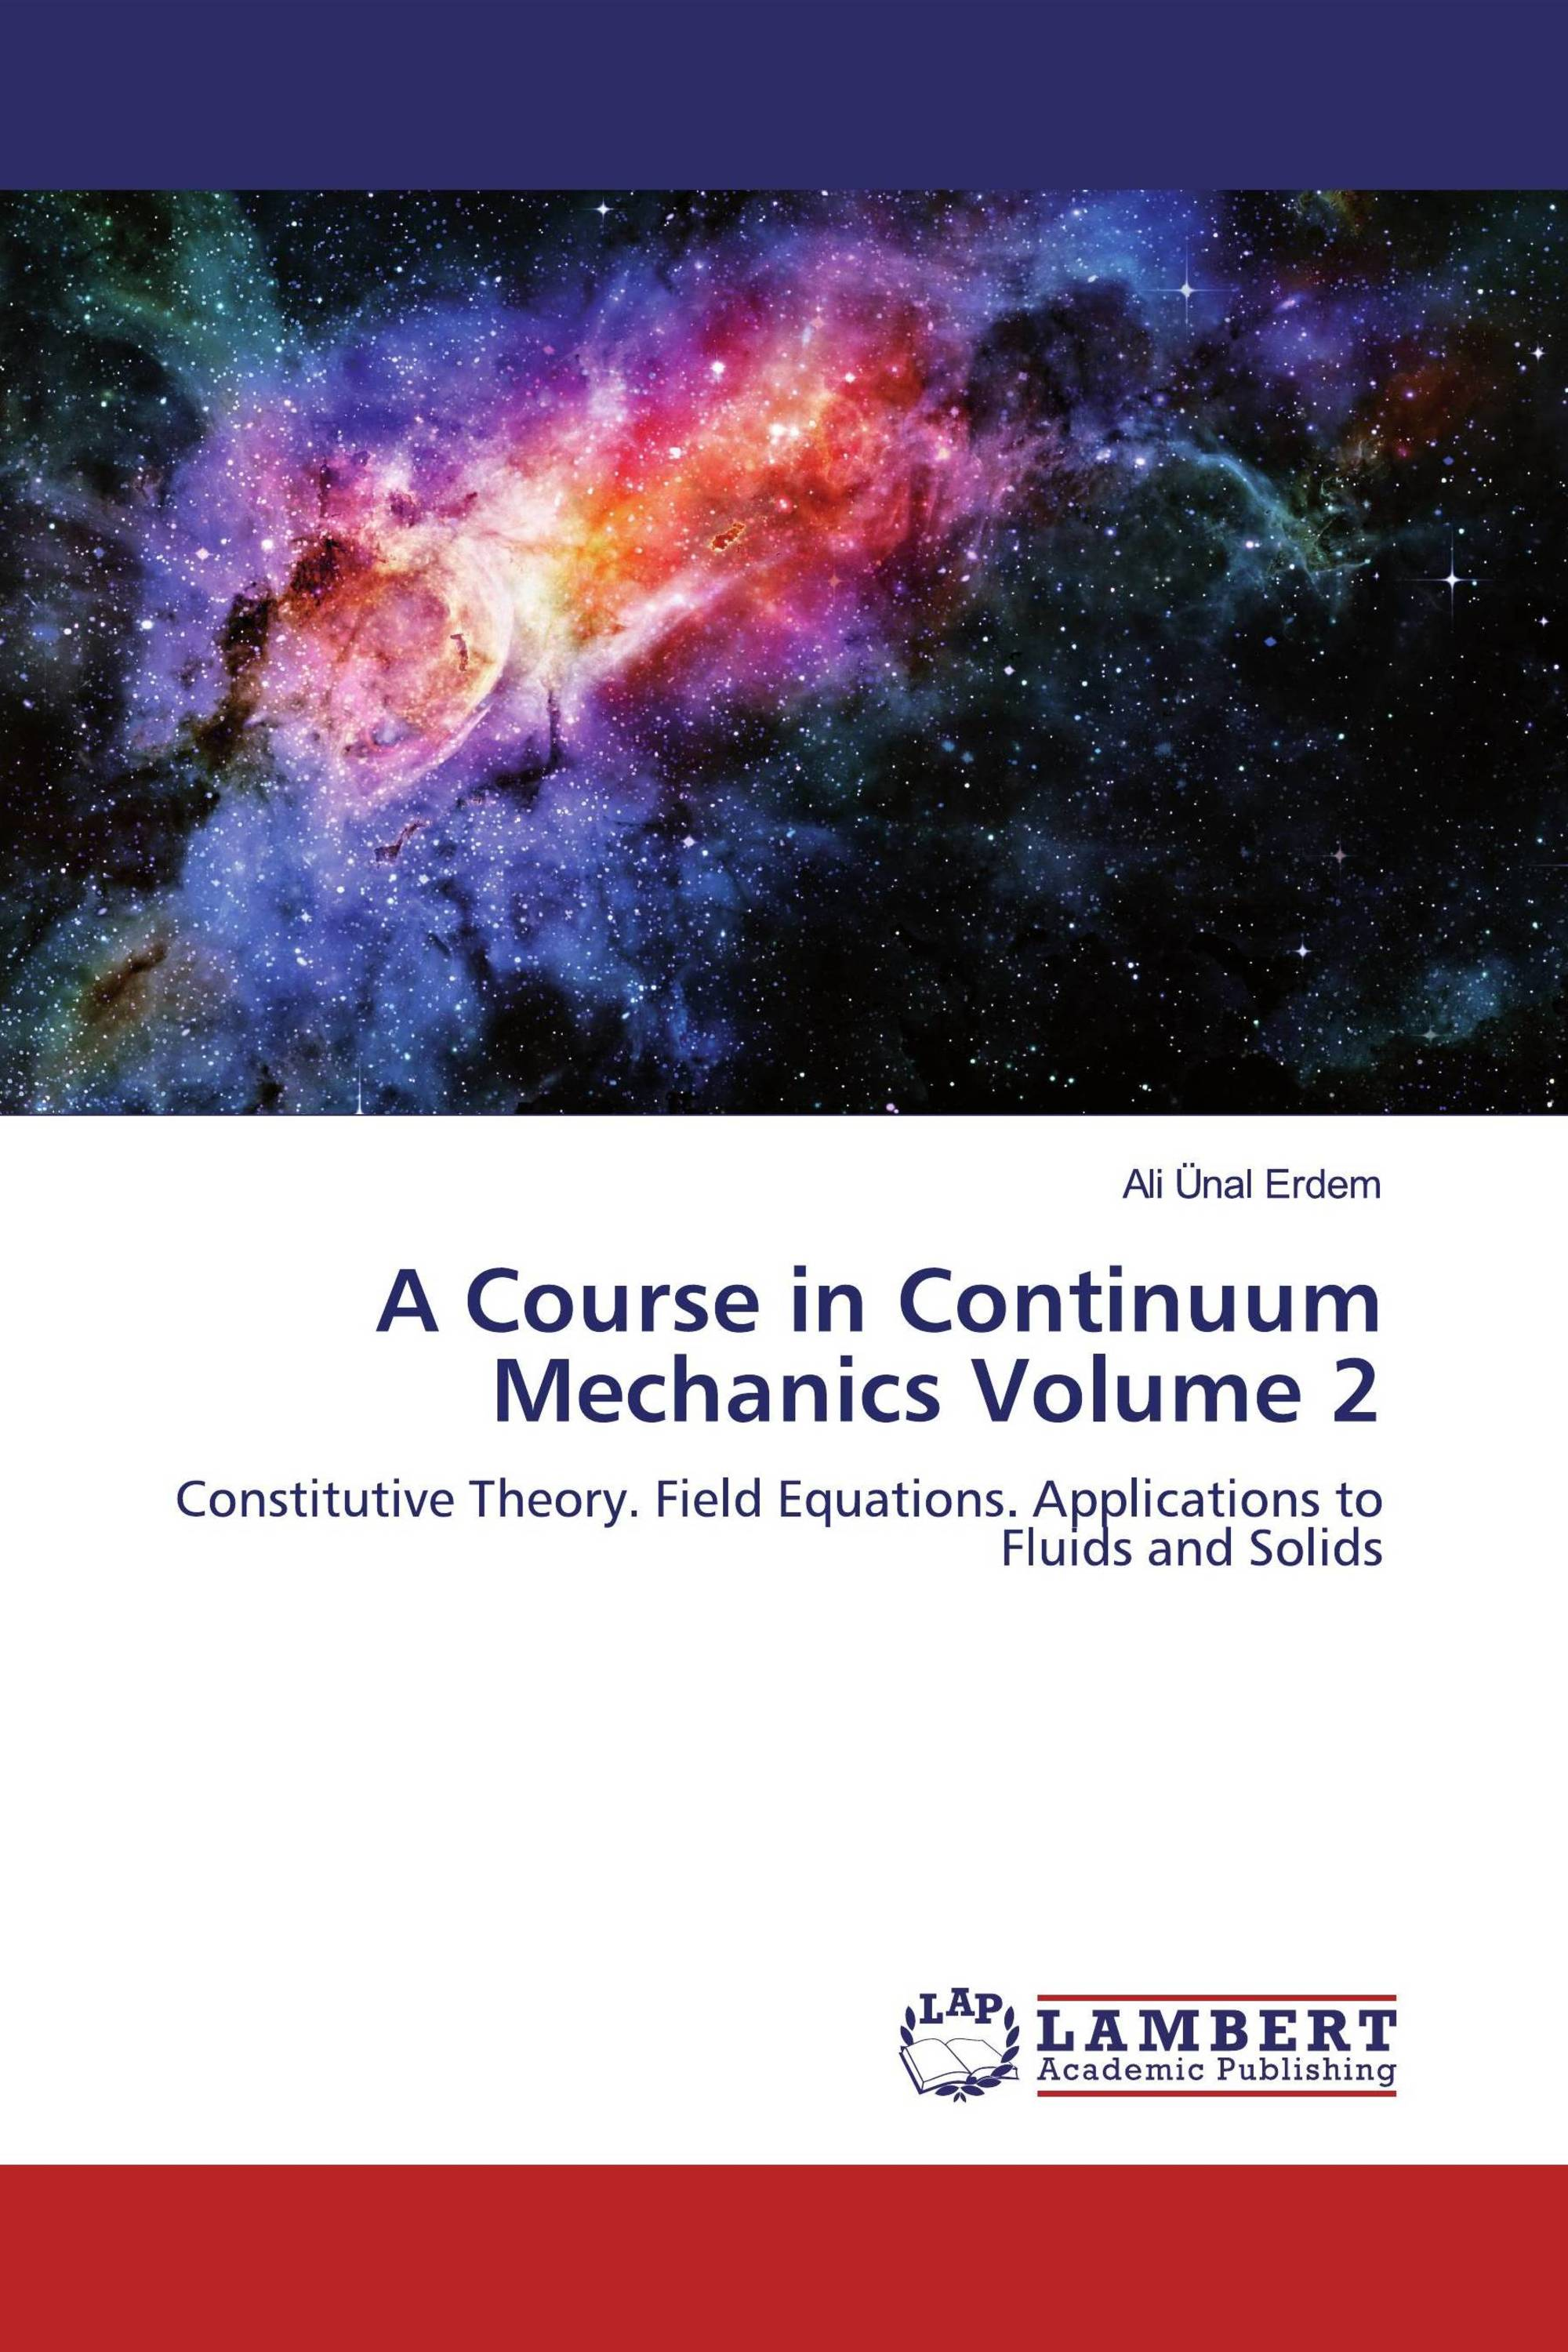 A Course in Continuum Mechanics Volume 2